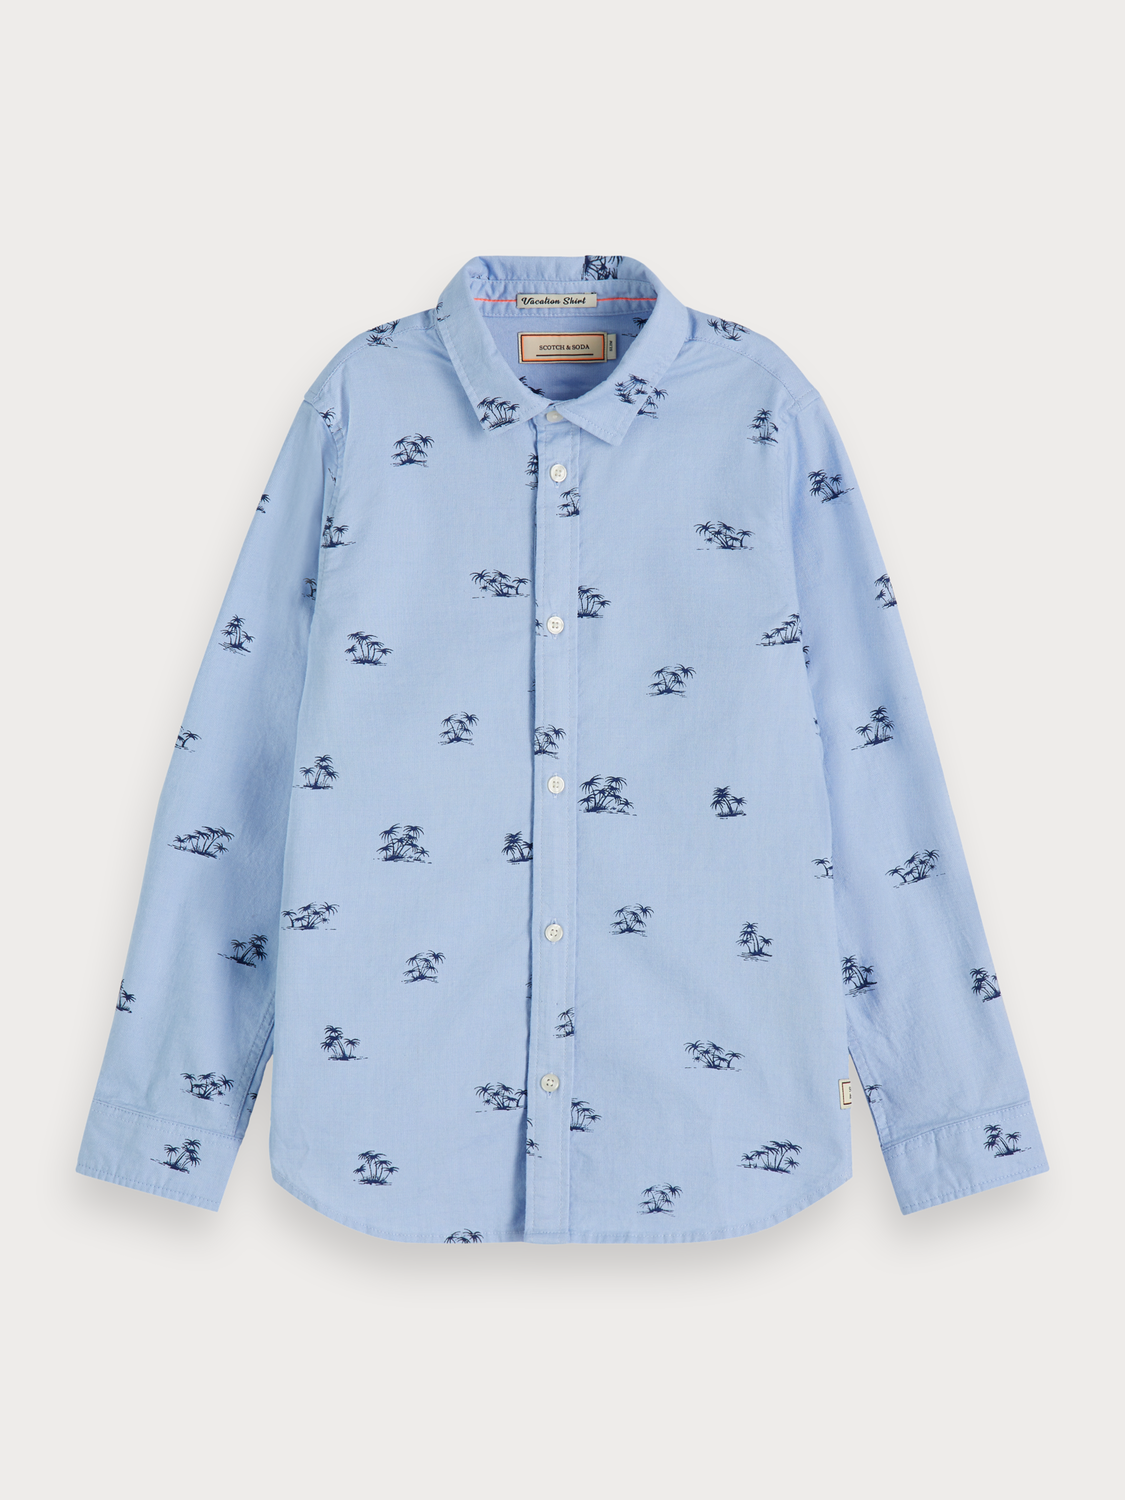 Boys Palm tree print oxford shirt | Slim fit